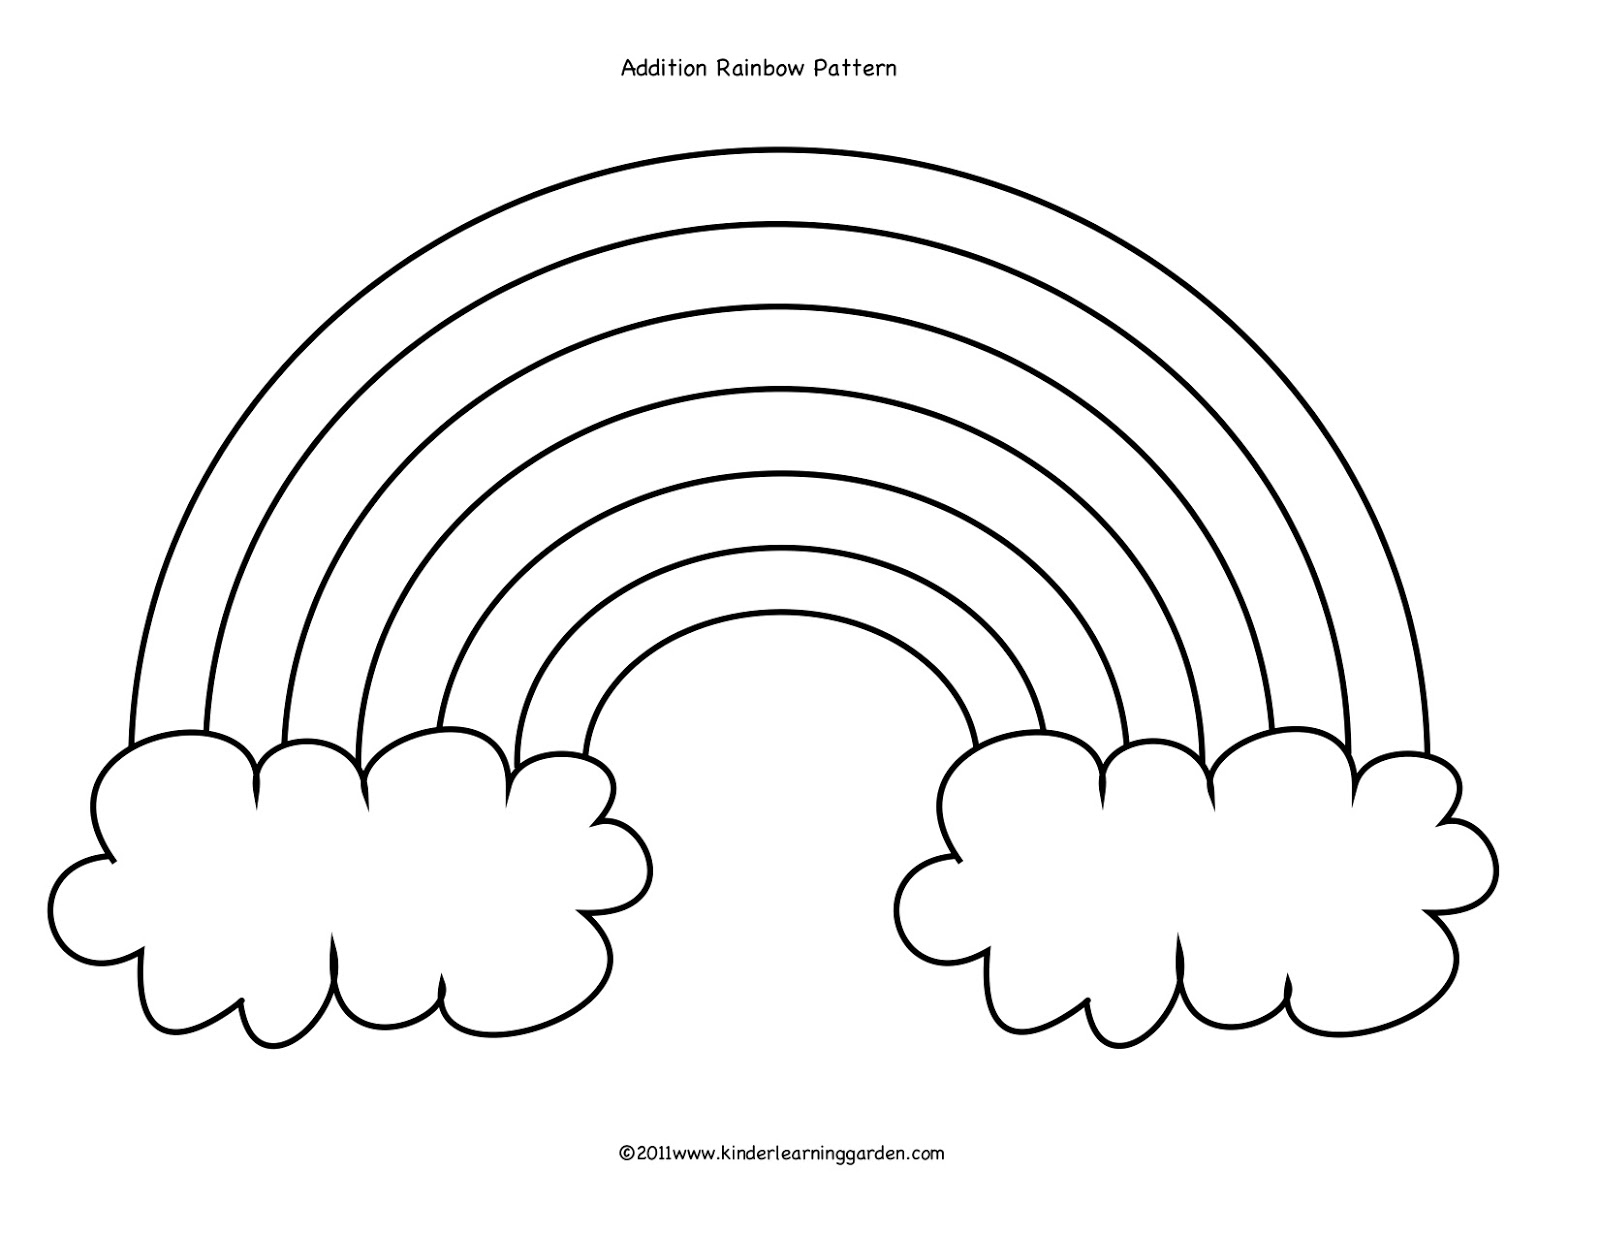 Kinder Learning Garden Rainbow Cloud Addition